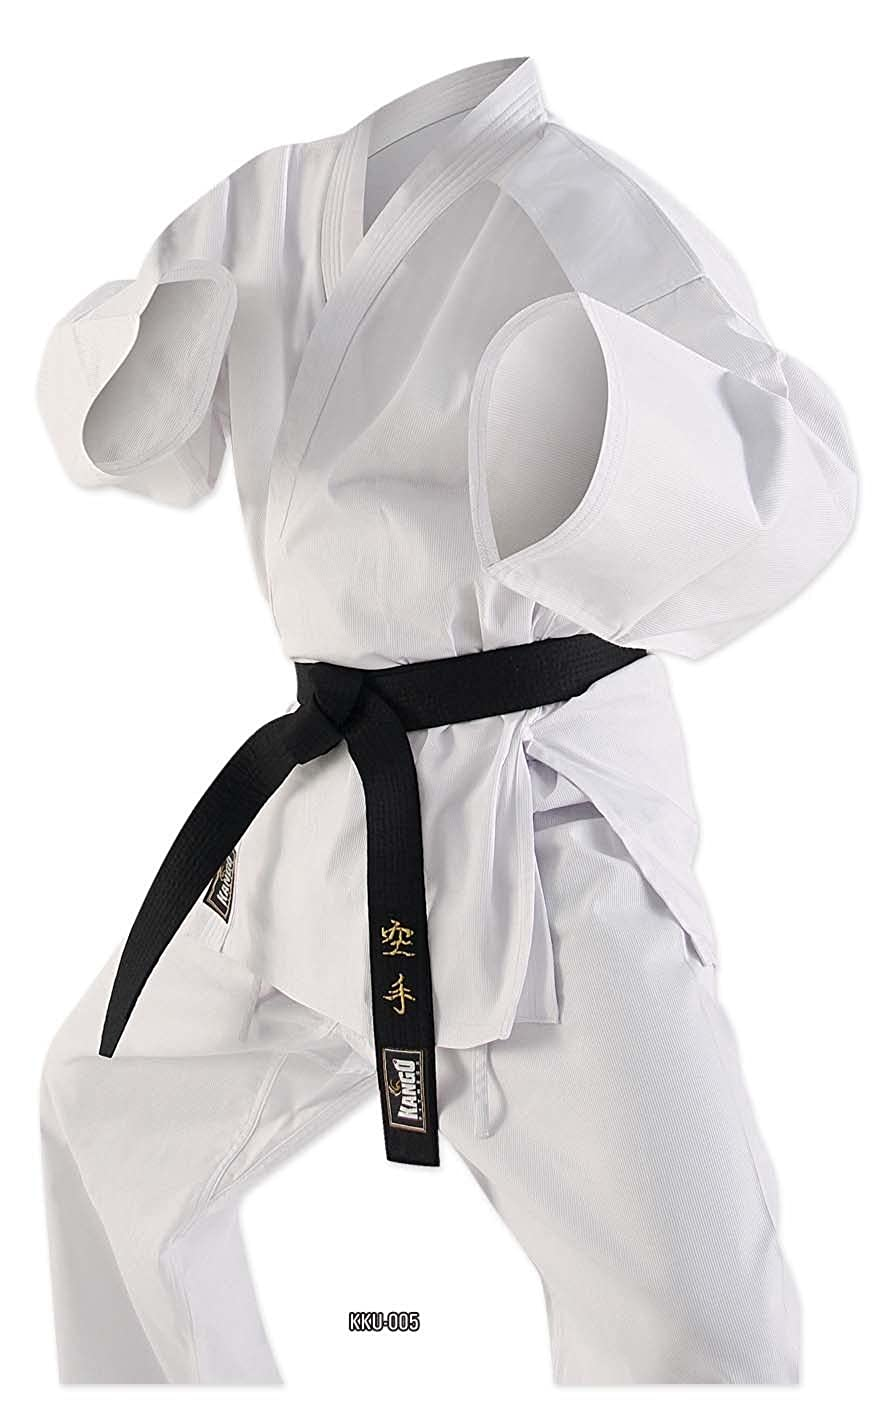 Polyester Cotton Student 7oz Karate Suit White Gi with Free White Belt 000-7 Sizes Kango fitness